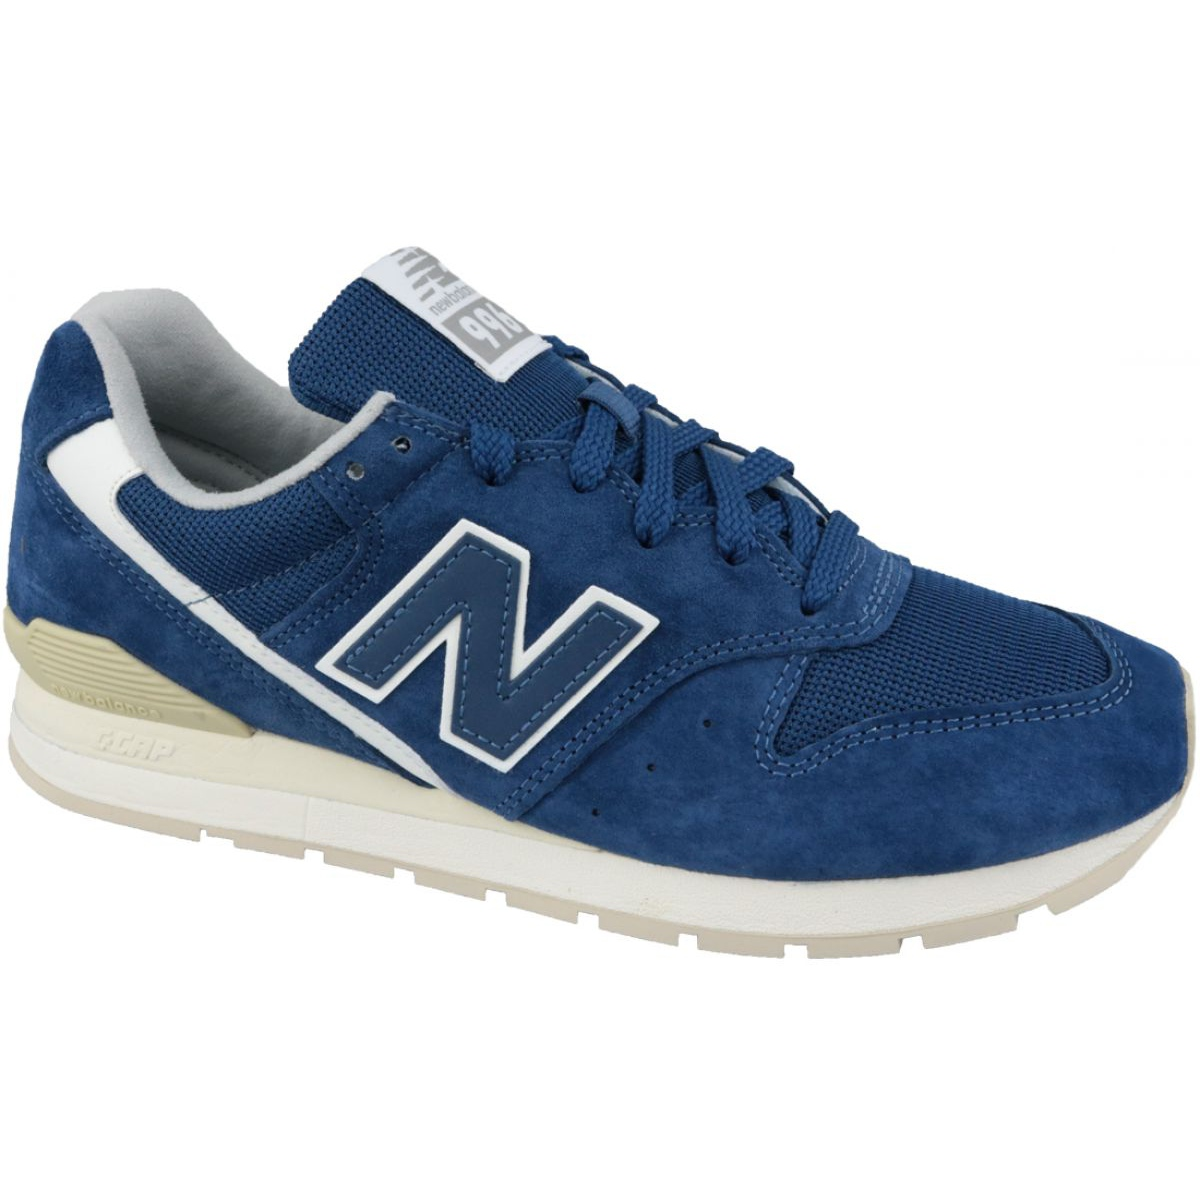 New Balance Life Style Mens Shoes Navy Blue//White MS574SNV